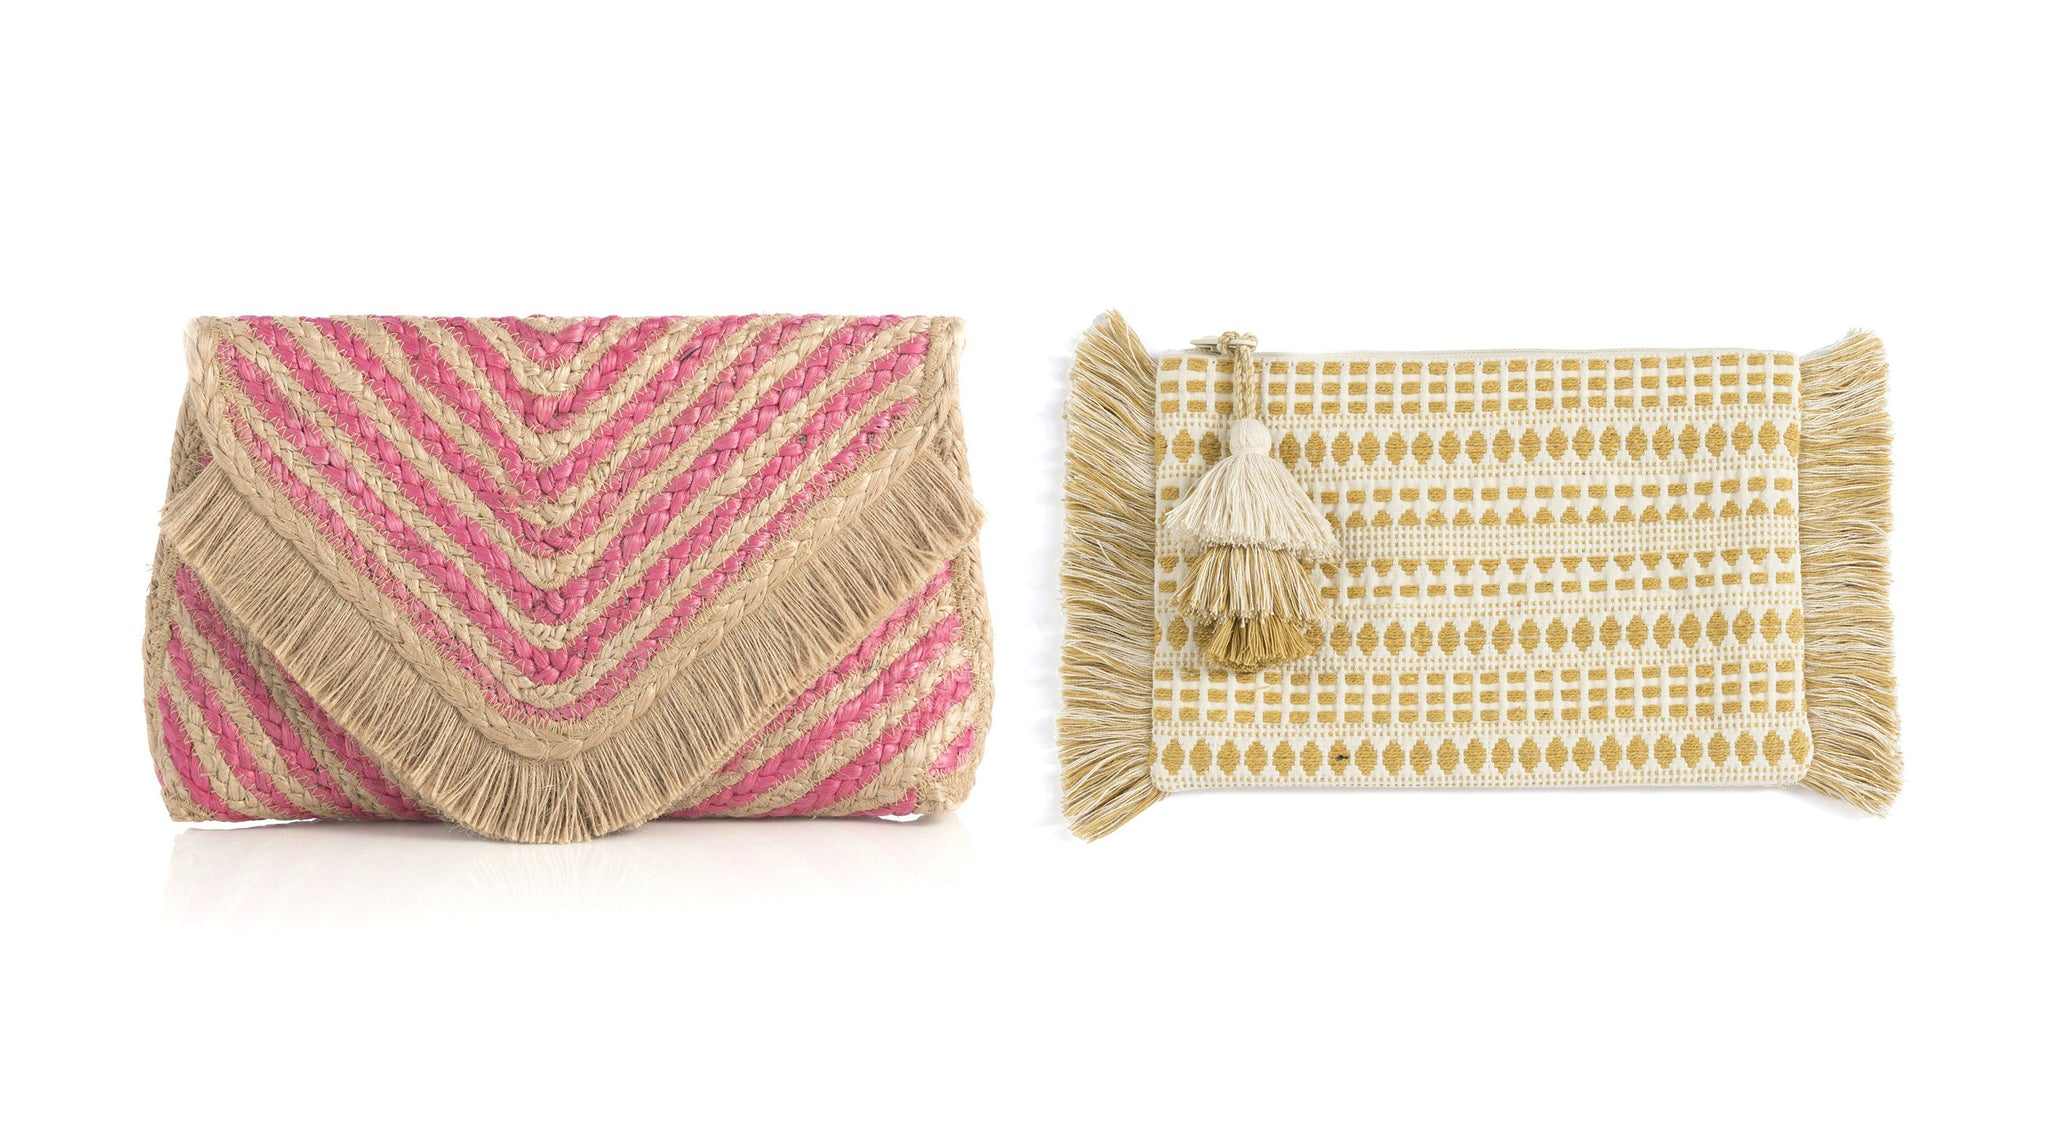 pink and natural striped jute clutch